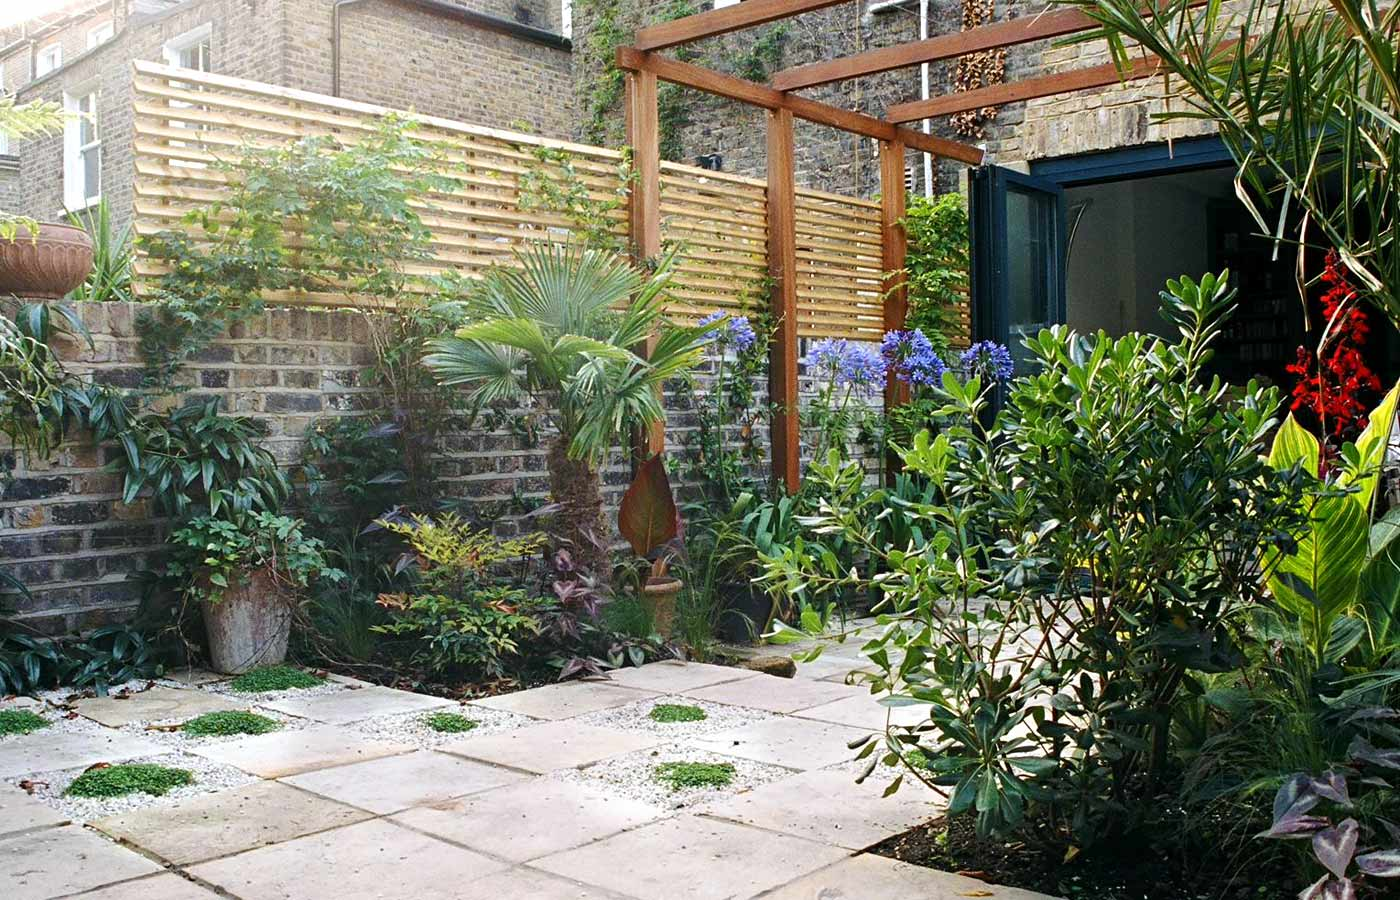 Courtyard garden design north london garden design for Italian courtyard garden design ideas